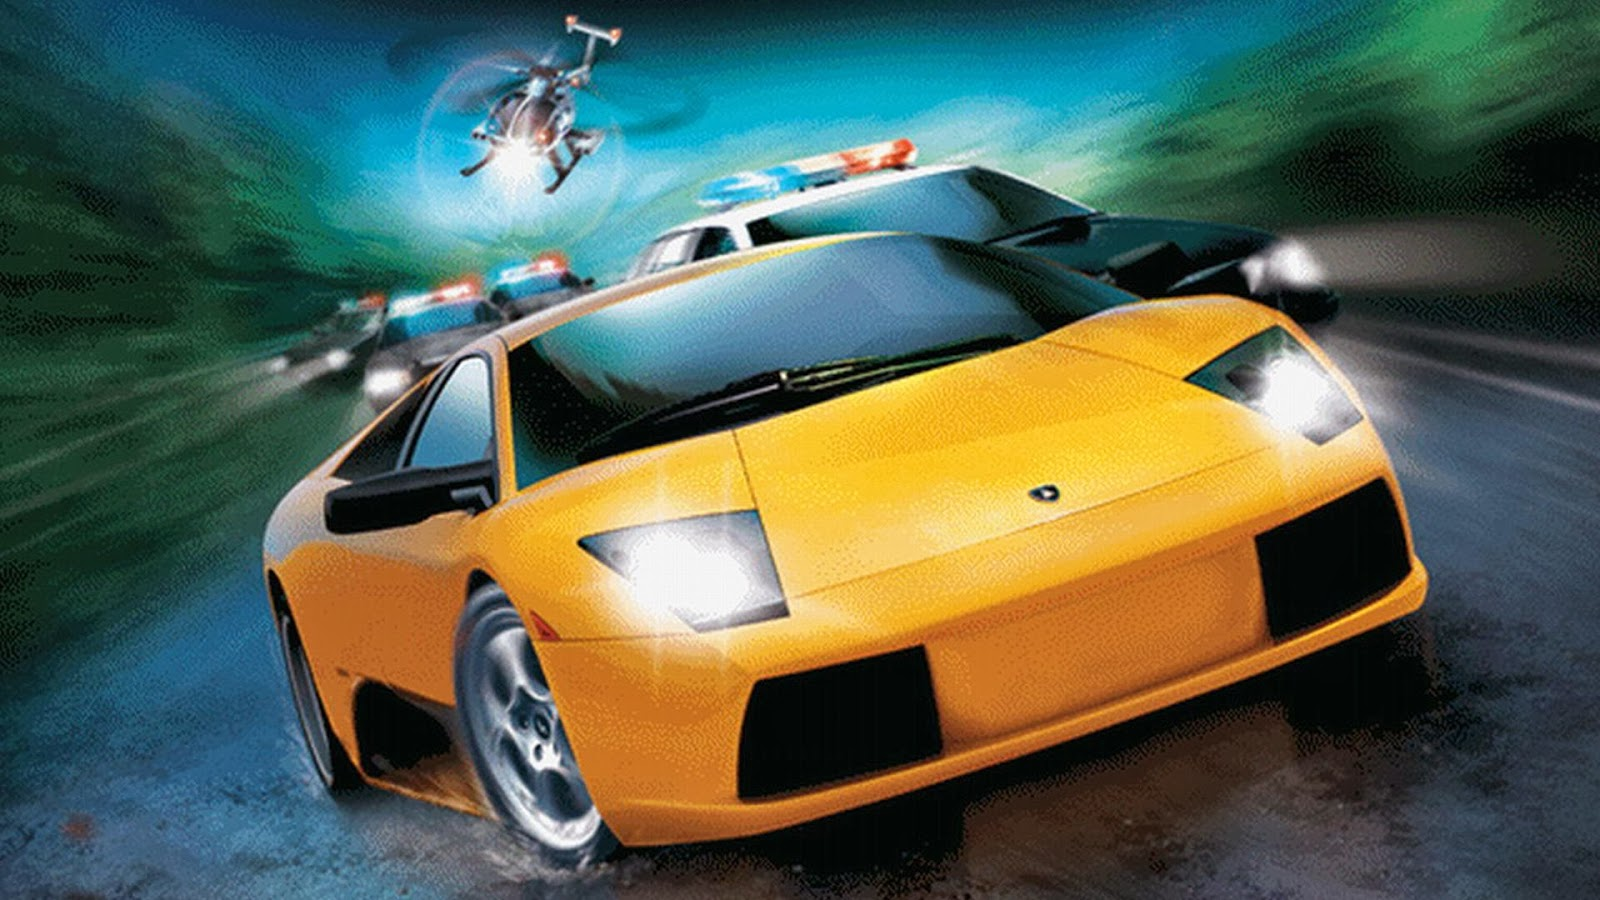 WALLPAPER ANDROID IPHONE Wallpaper Need For Speed Underground 2